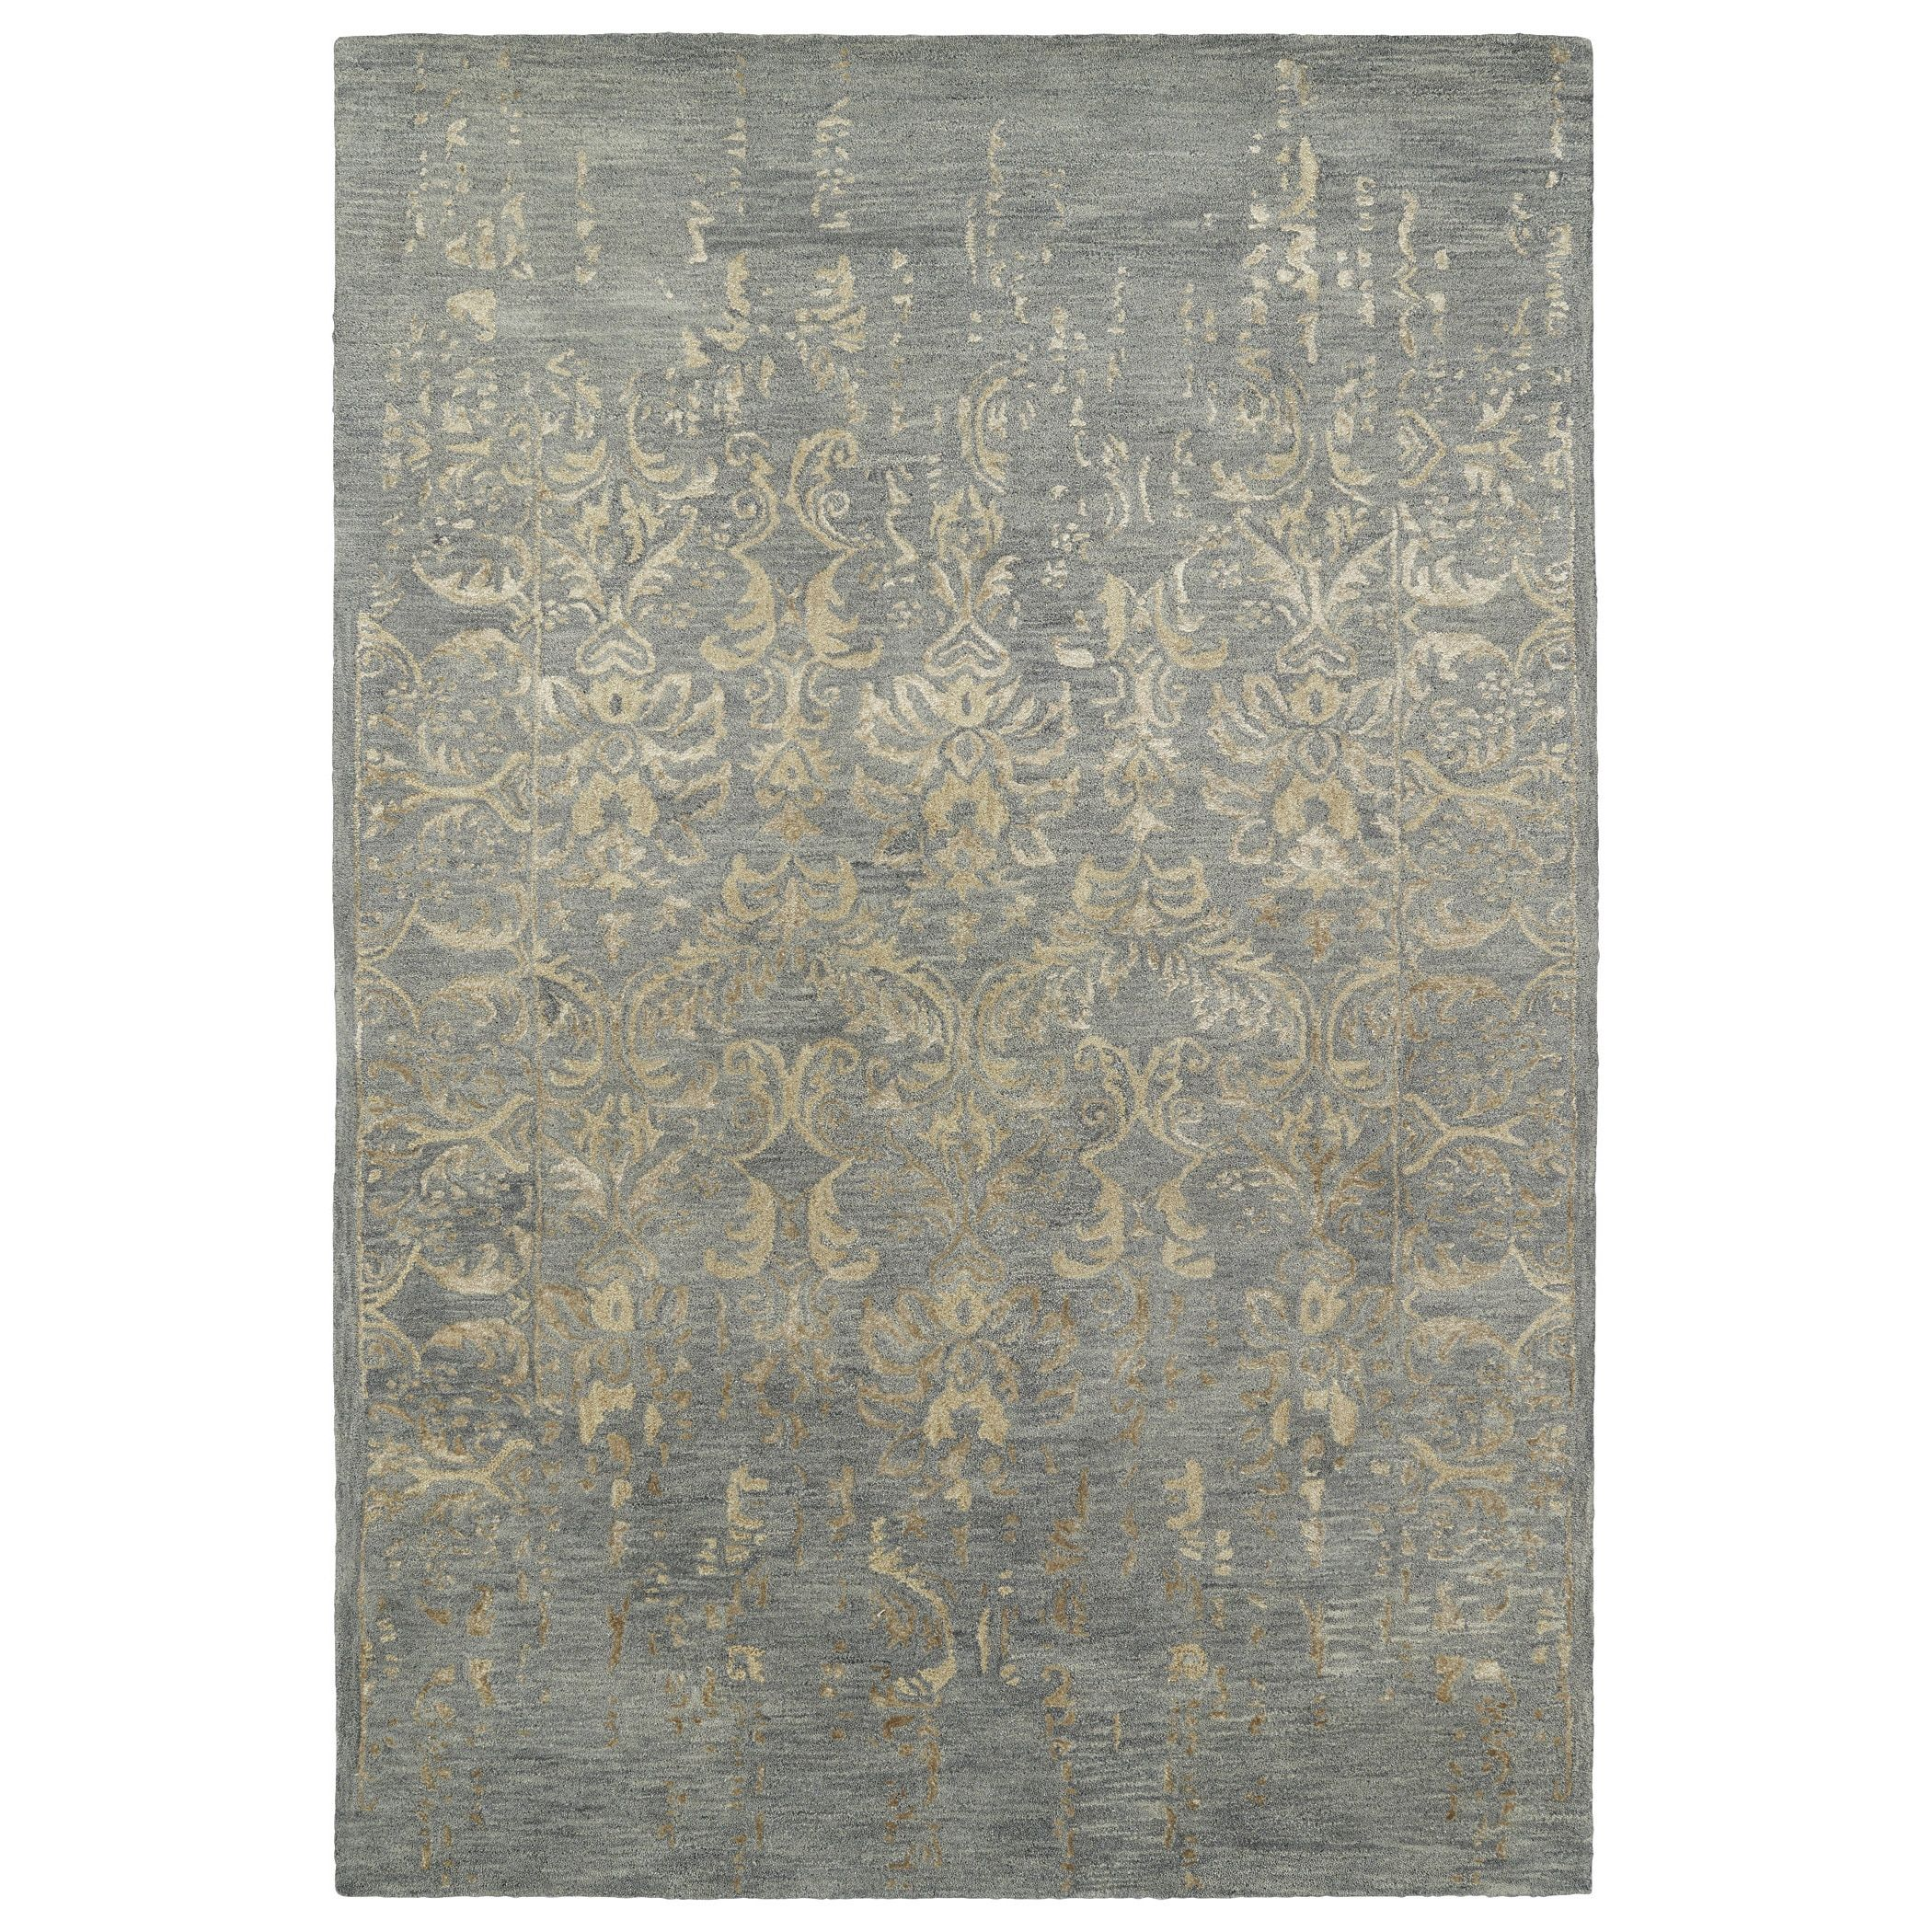 Online Shopping Bedding Furniture Electronics Jewelry Clothing More Green Rug Kaleen Area Rugs